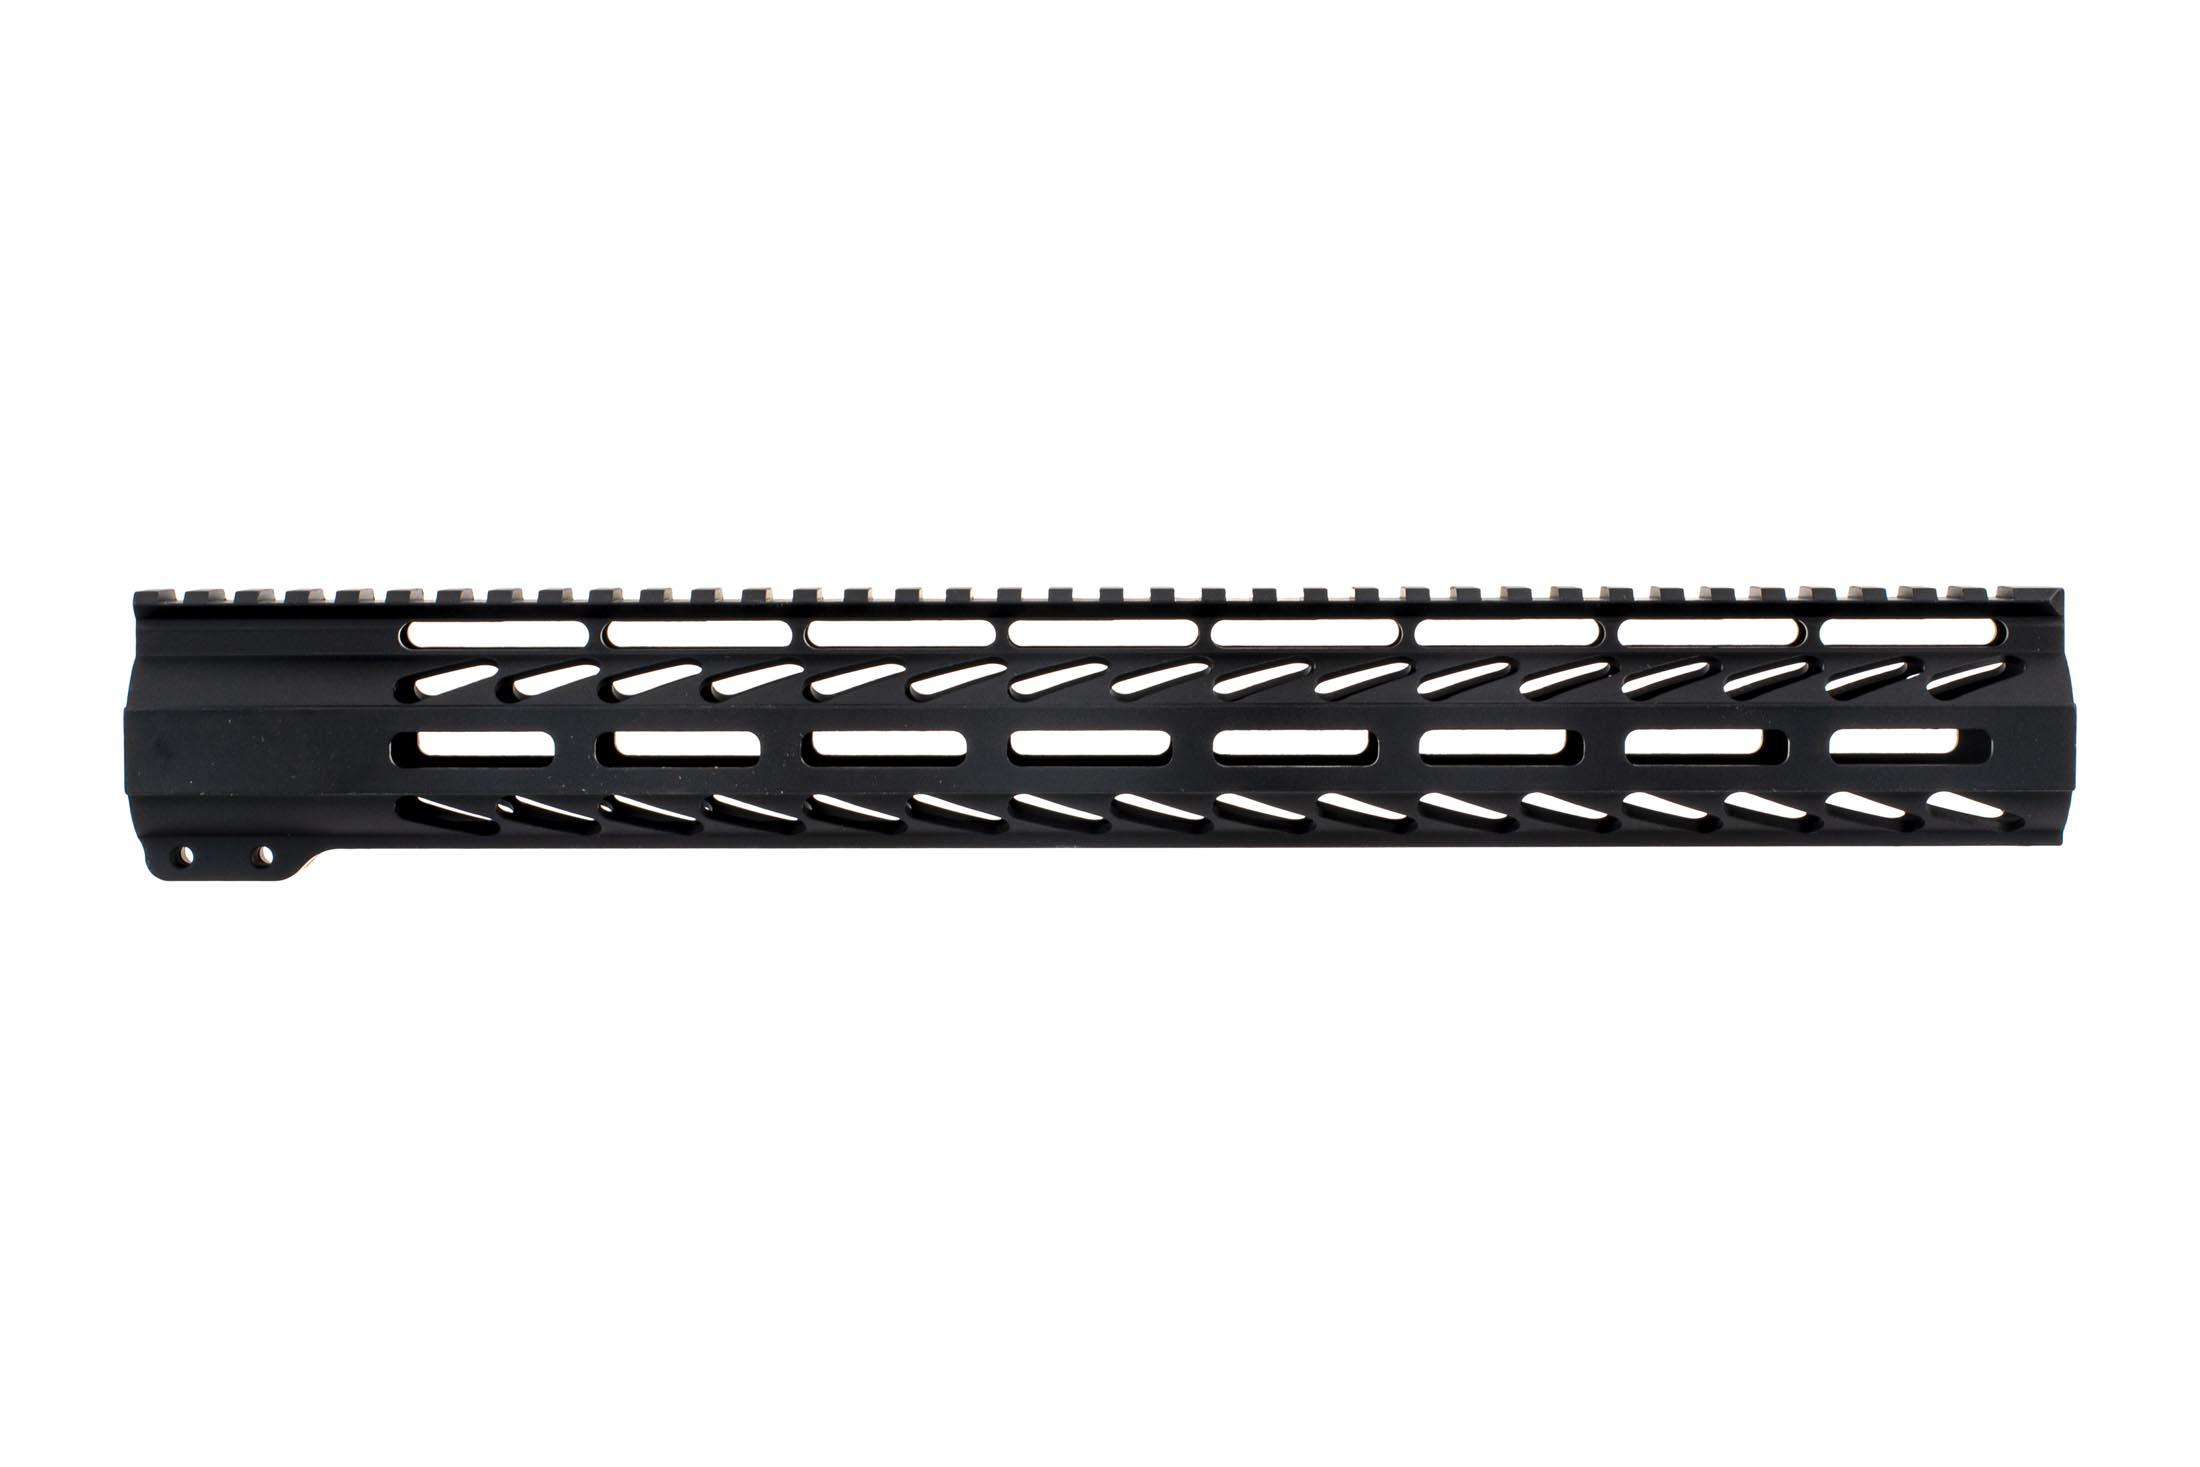 Ghost Firearms free float logoless AR 15 M-LOK rail features a tough black anodized finish and full length 15 top rail.